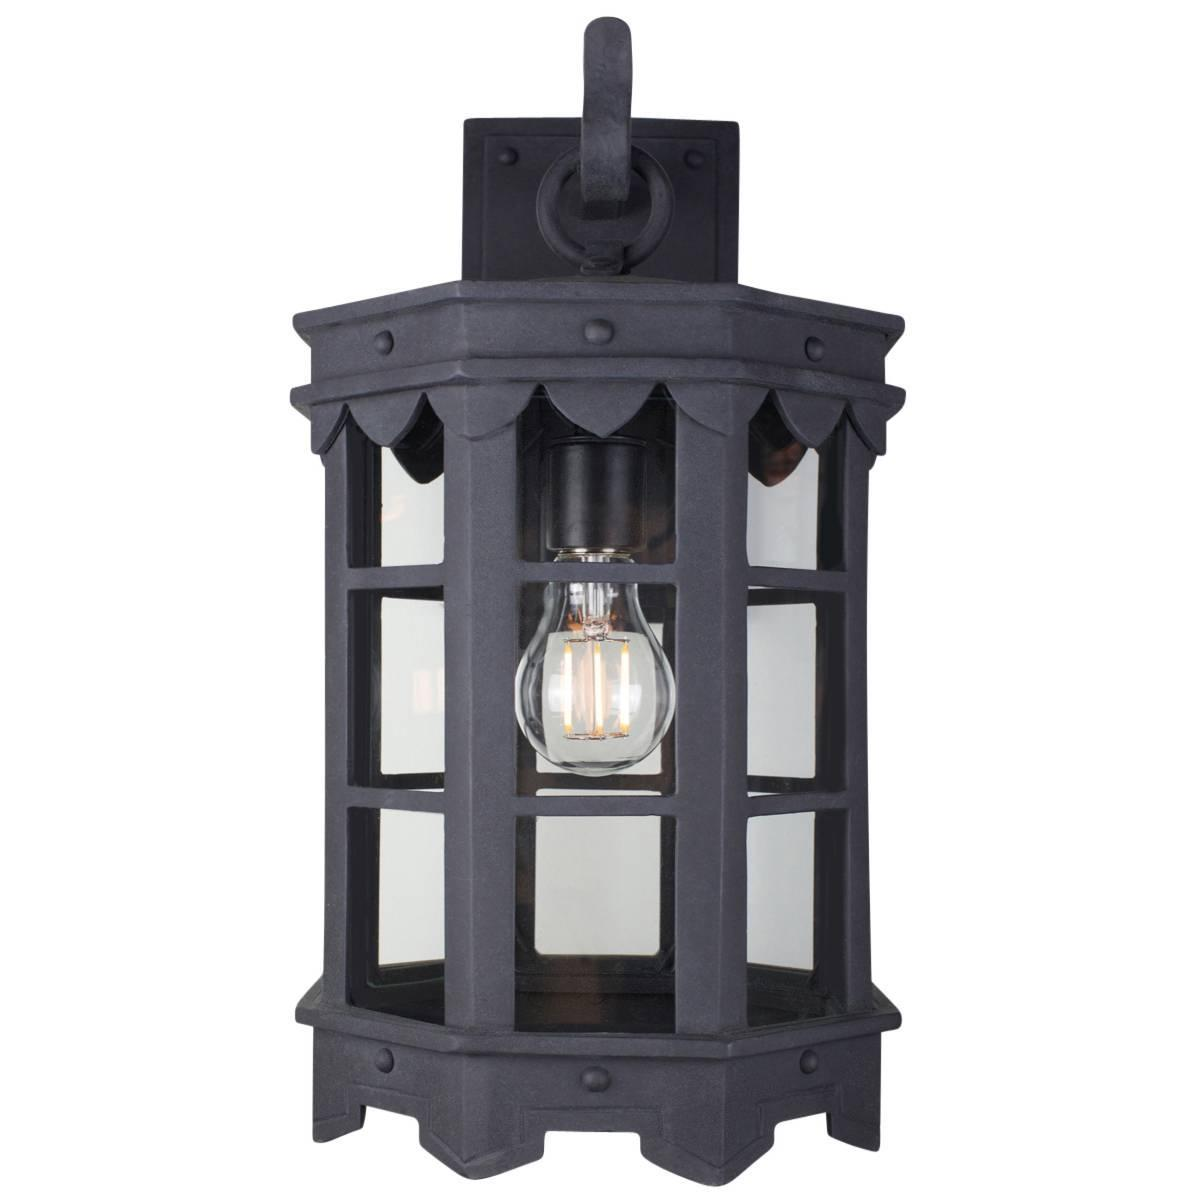 Detailed Spanish Wrought Iron Exterior Arm Mount Lantern With Premium Finish For Sale At 1stdibs